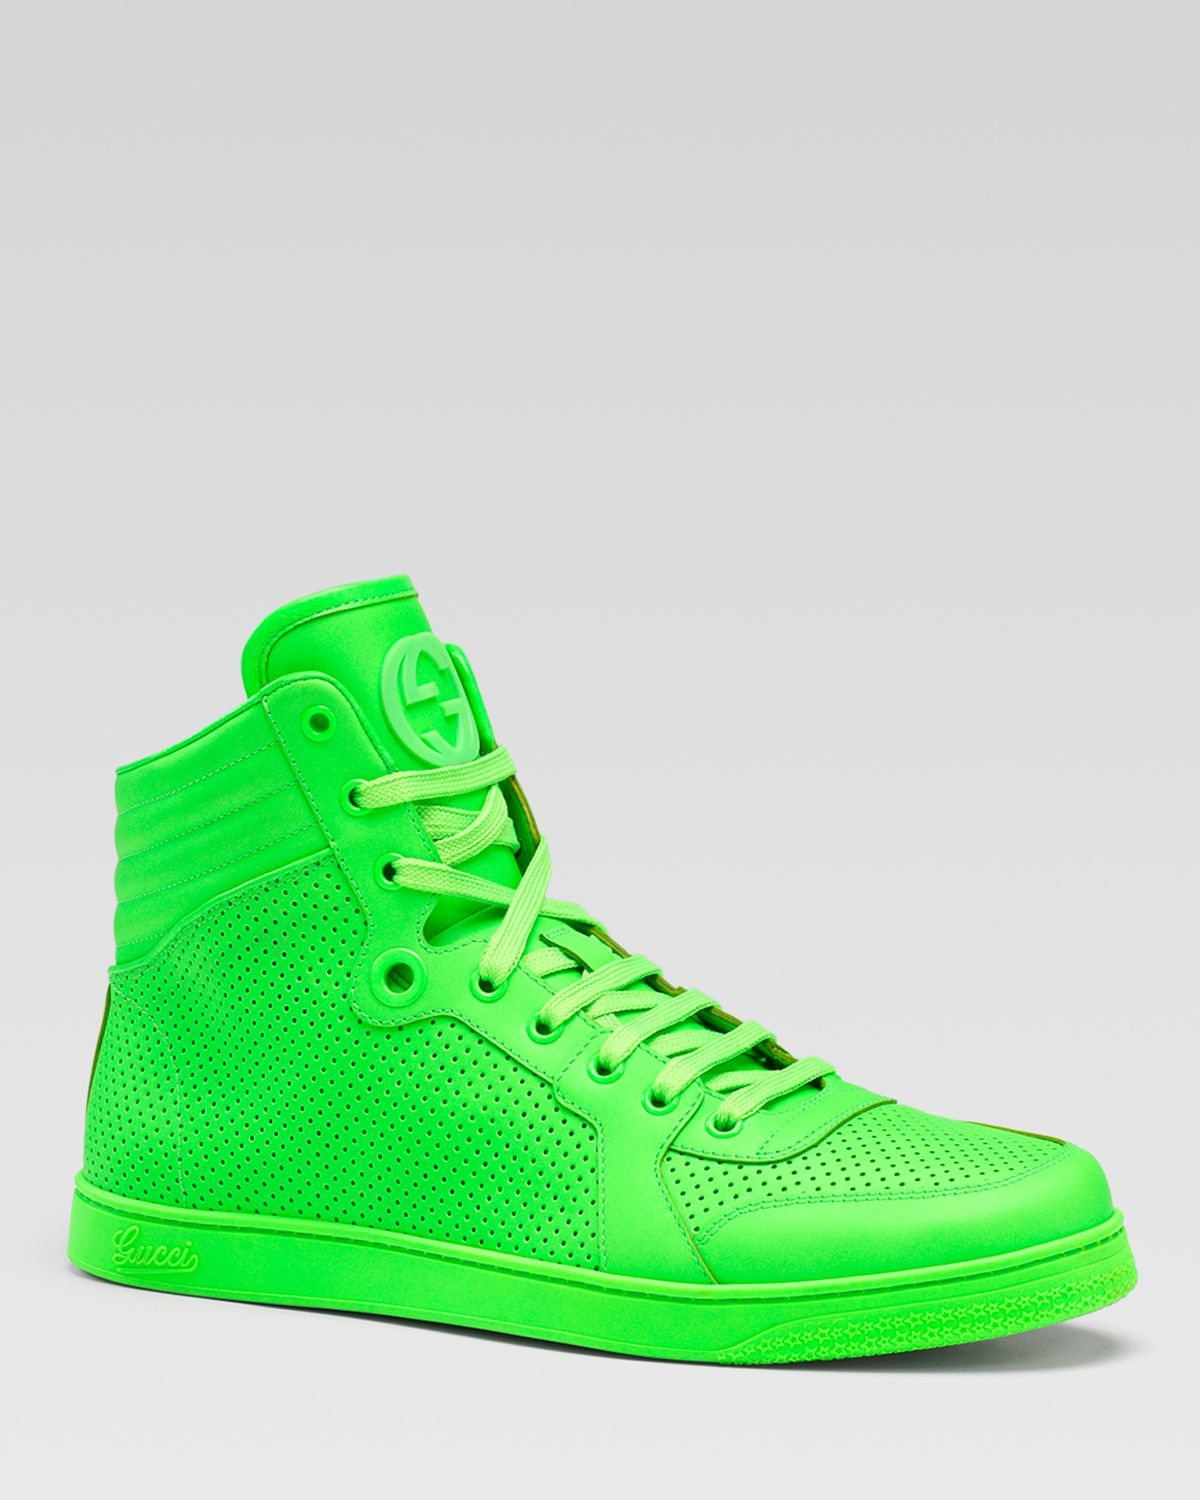 gucci coda neon leather hightop sneakers in green for men lyst. Black Bedroom Furniture Sets. Home Design Ideas